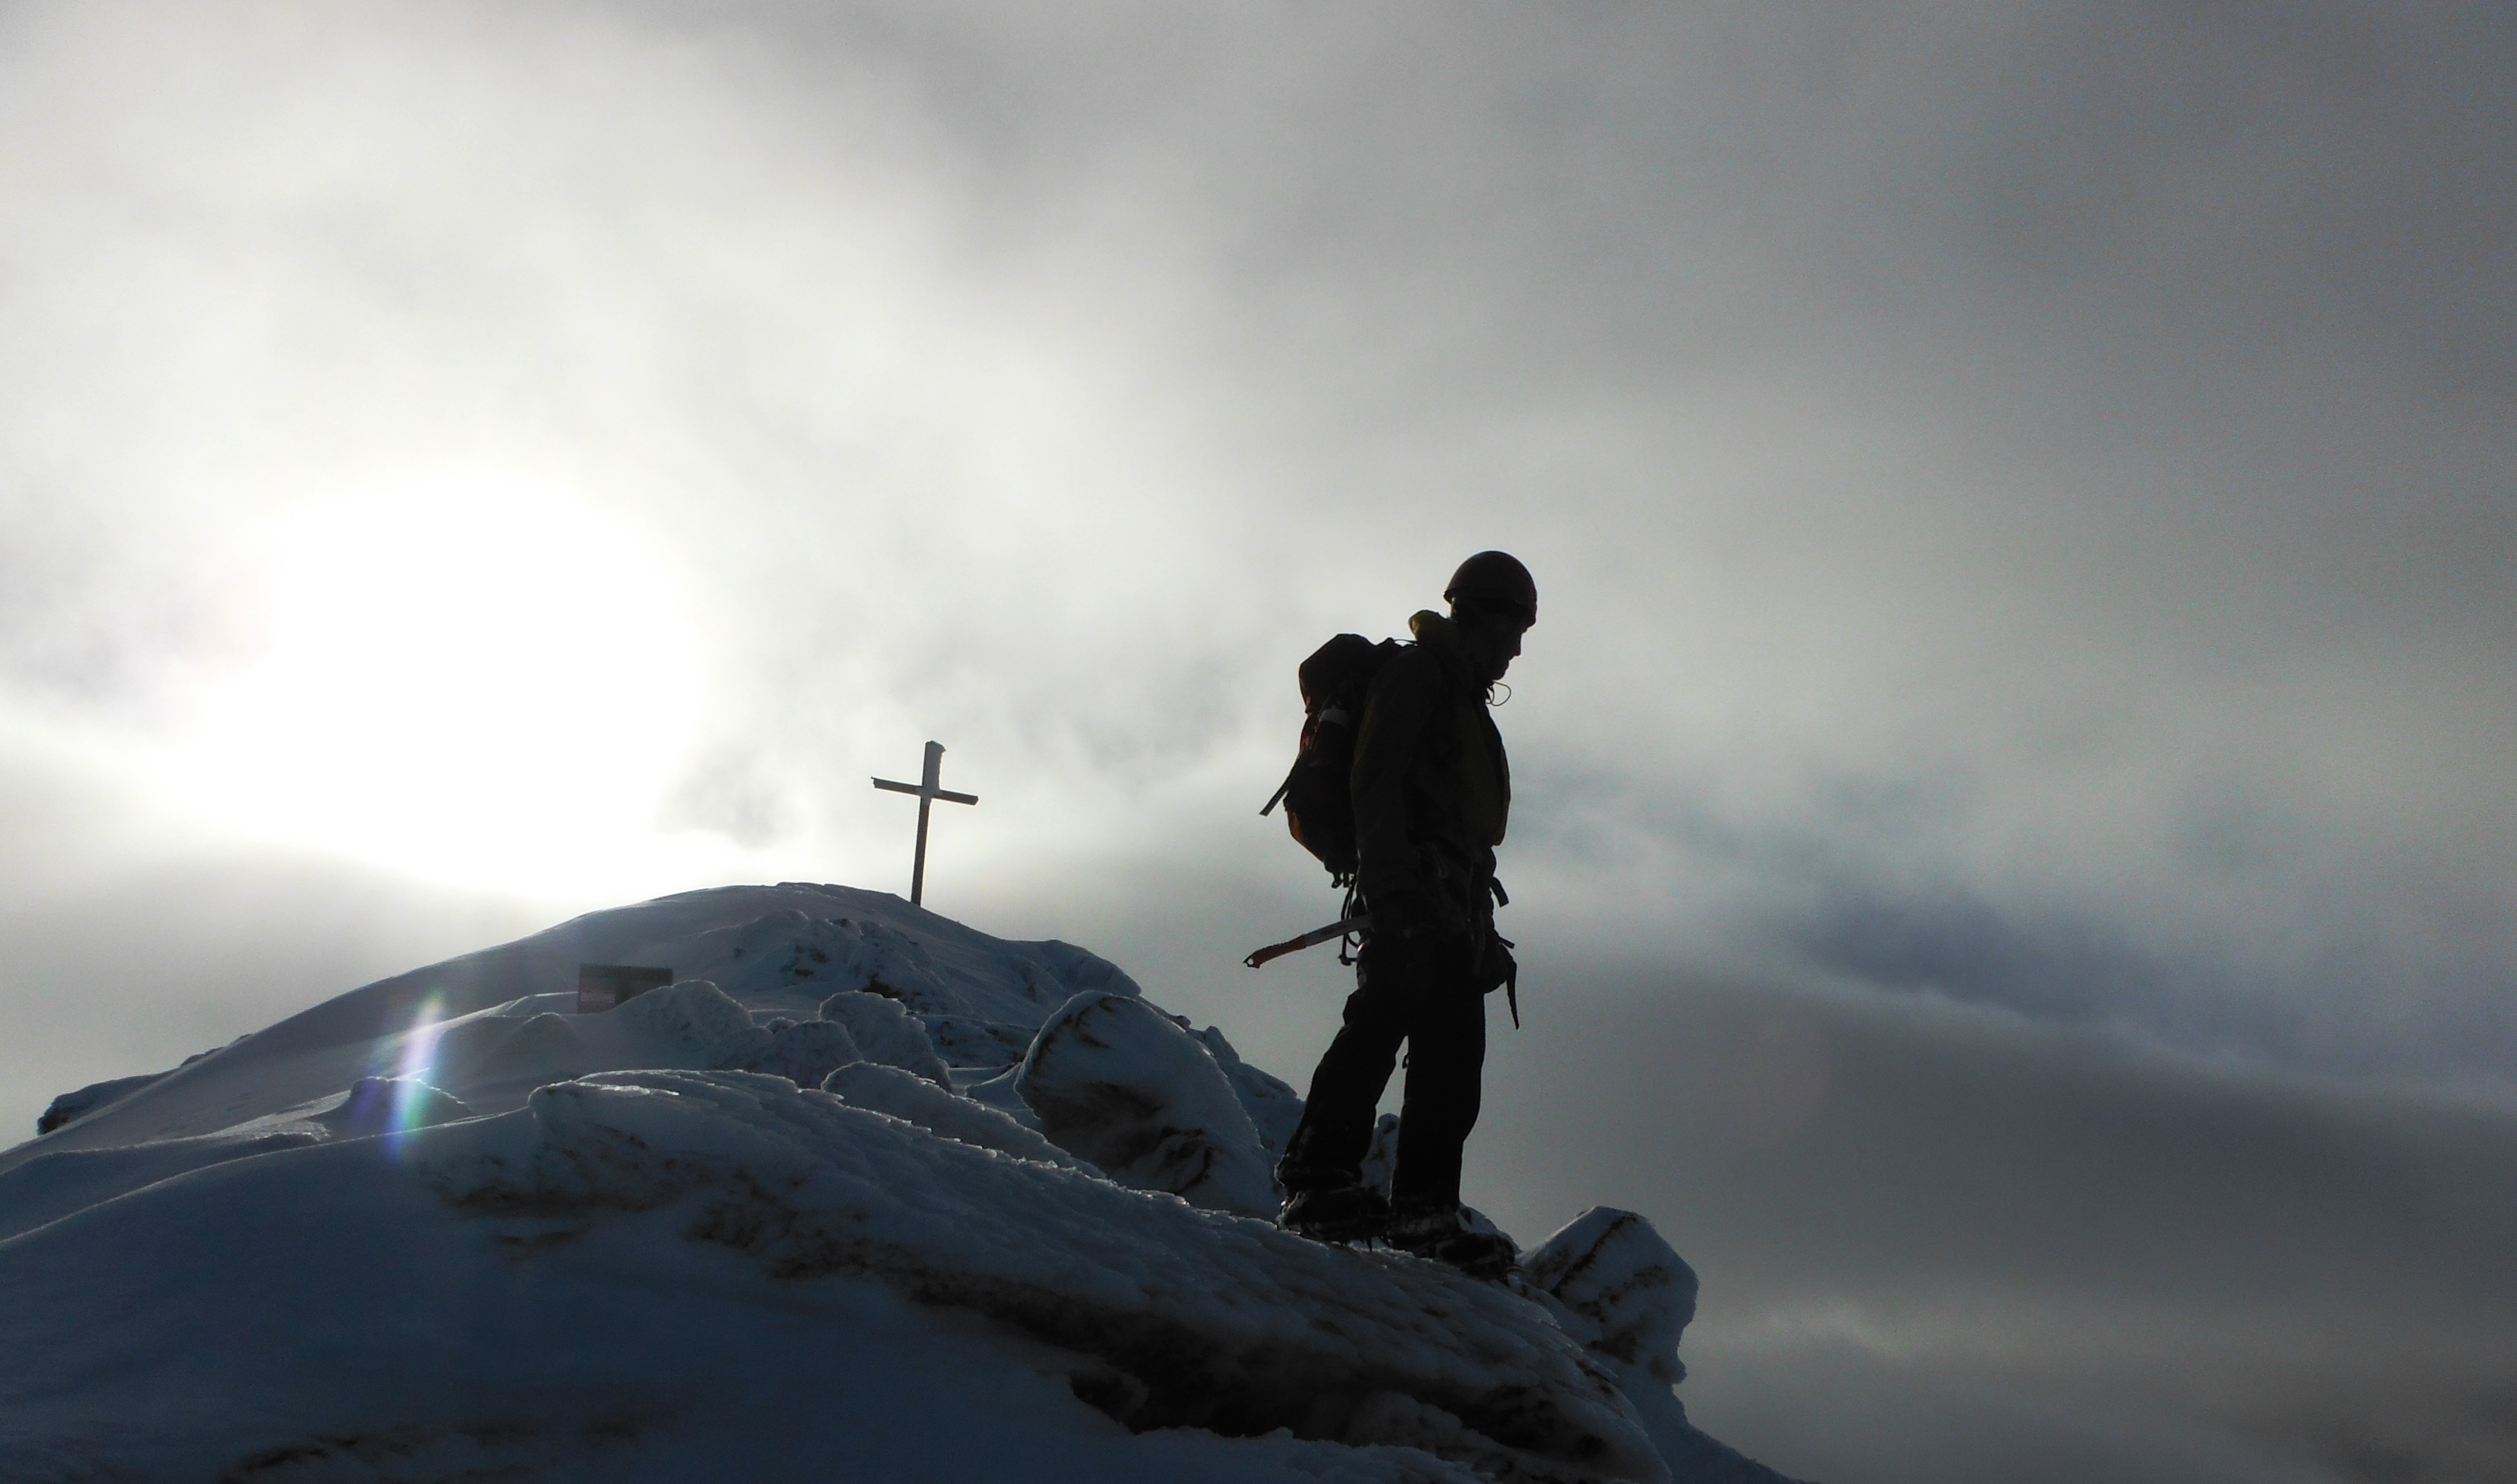 Taking it all in after a days Winter mountaineering on Carrauntoohil